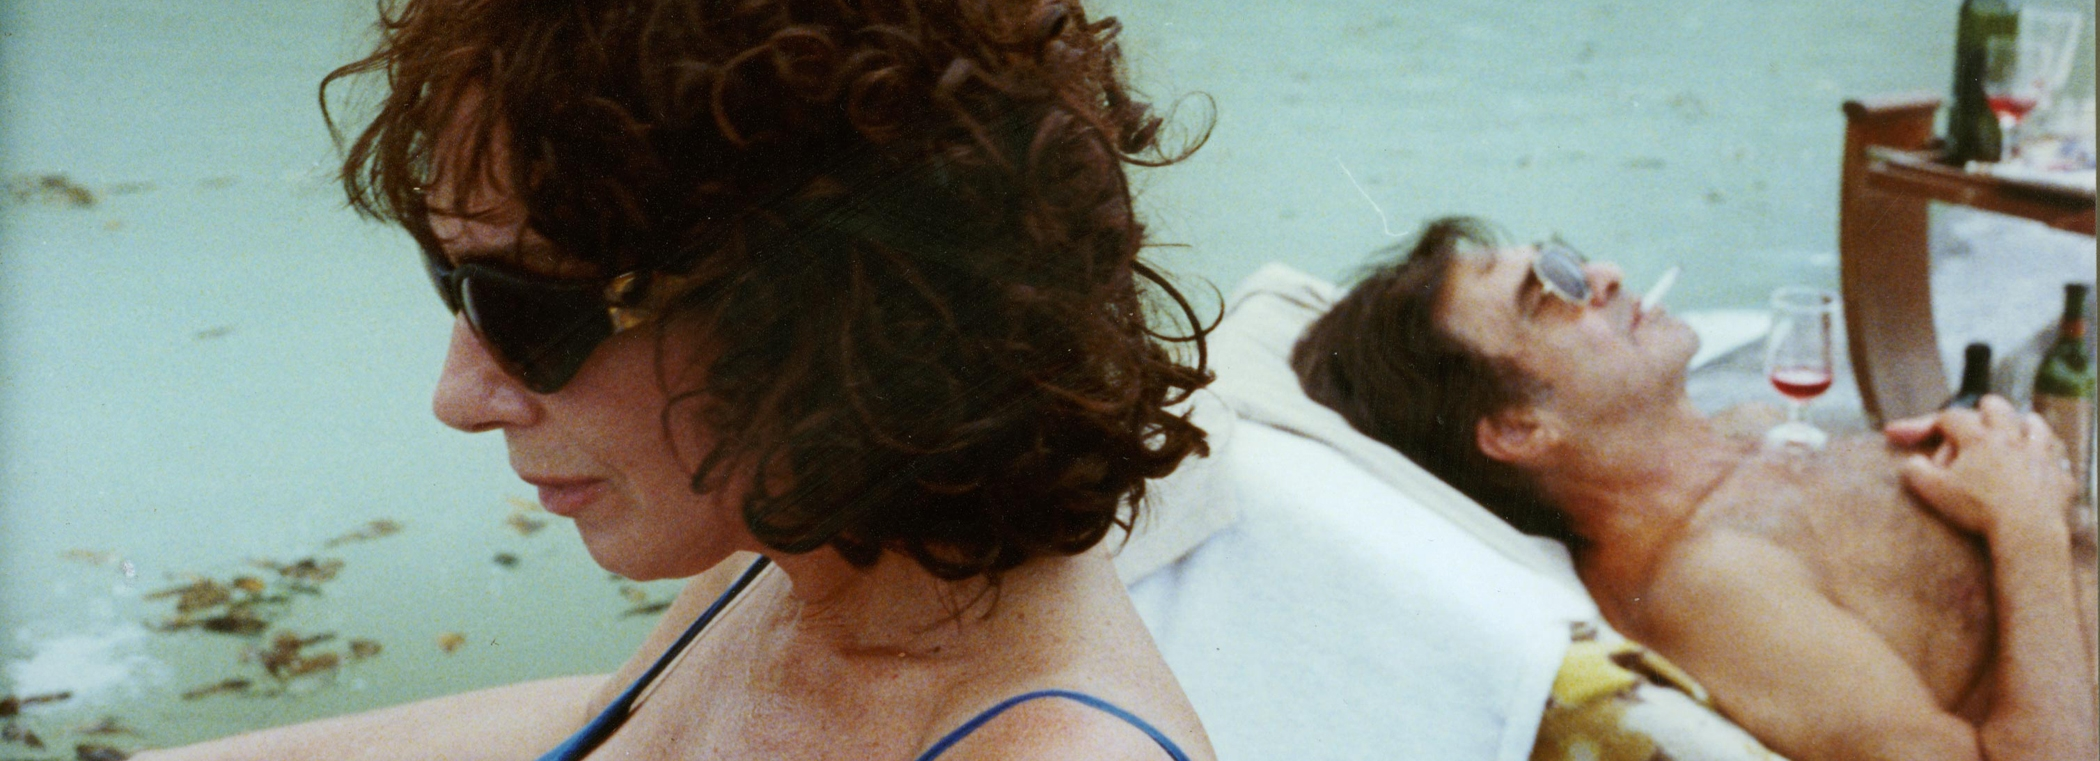 """LA CIÉNAGA  (Lucrecia Martel,Argentina, 2001, 102 min. In Spanish with English subtitles) With Mercedes Morán, Graciela Borges, Martín Adjemián.  """"Superb filmmaking."""" — J. Hoberman, Village Voice   February in Argentina's Northeast can be uncomfortably hot and humid. Bodies become sluggish and sticky... and tensions rise. Mecha is in her 50's and must deal with four accident-prone teenagers, a husband who dyes his hair and the tedious problem of sullen servants. Nothing that a few drinks can't cure. Tali is Mecha's cousin. She has four noisy small children and a husband who loves his house, loves his kids, and loves to hunt. Mecha and her family spend their summers at a country estate whose glory has long faded, and where the two families, reunited by an accident, will attempt to survive a summer from hell. With uncompromising talent, Martel's astonishing feature debut —which preceded the celebrated films  The Holy Girl  and  The Headless Woman — brilliantly depicts the decadence of the Argentine middle-class through this family's story.   Saturday, November 14, 8:30pm"""